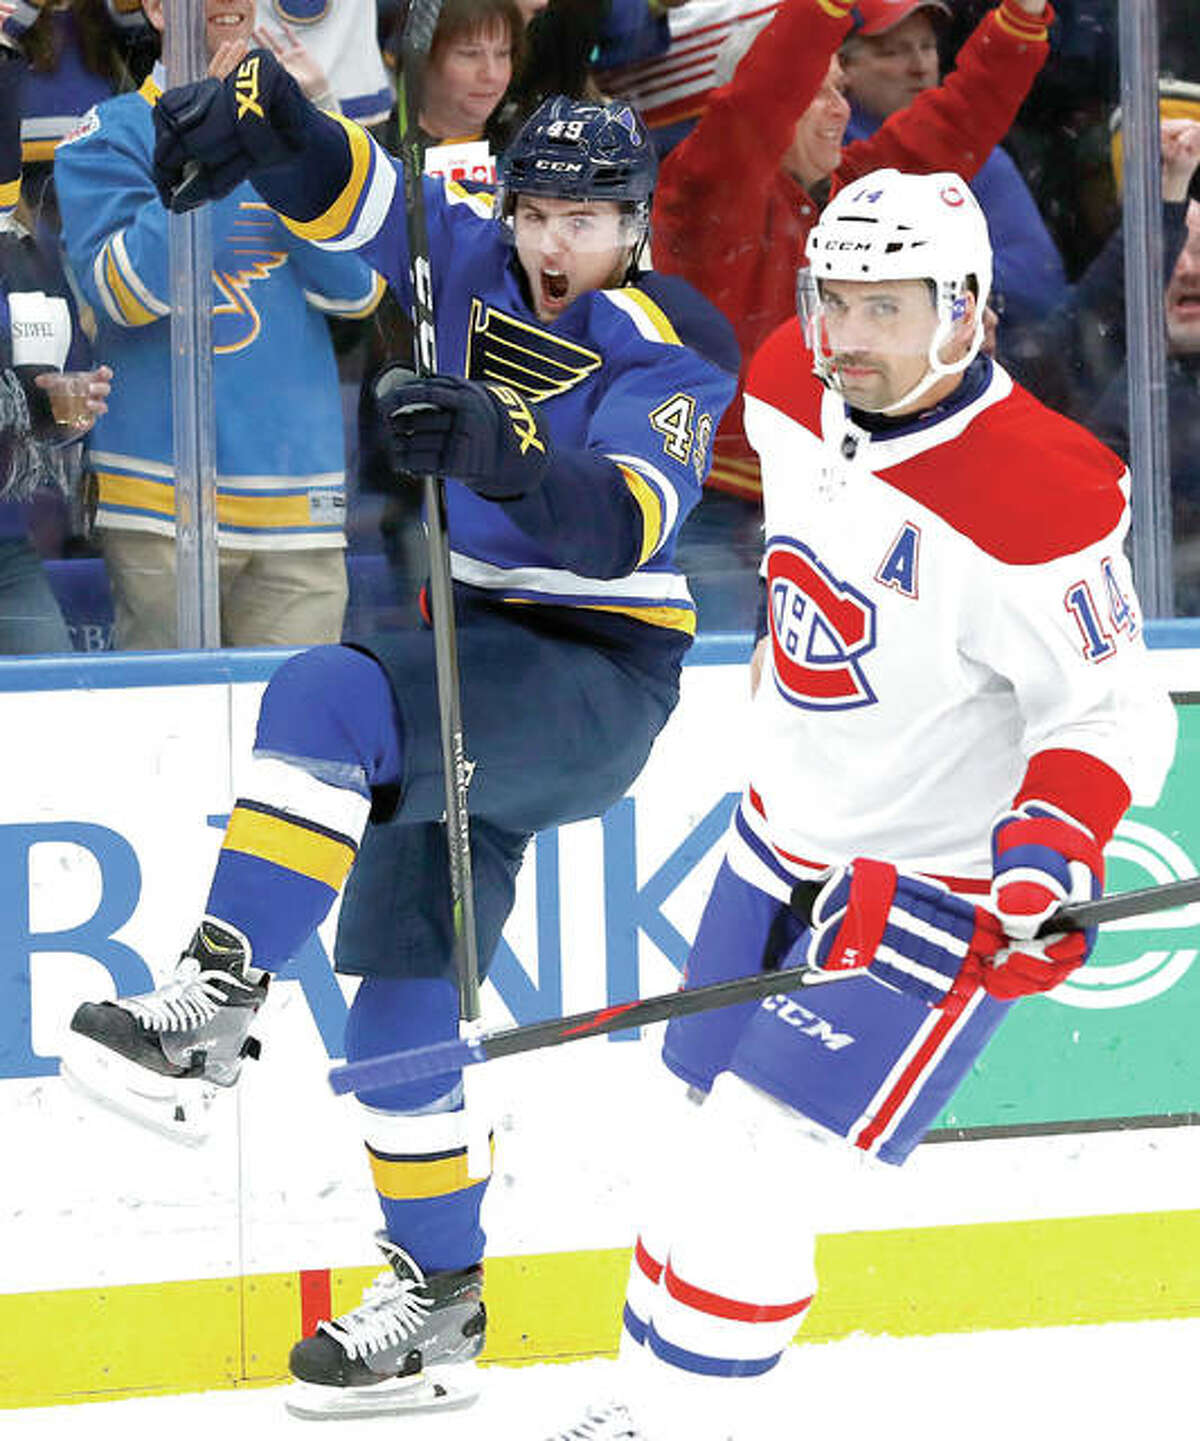 The Blues' Ivan Barbashev, left, celebrates after scoring while the Canadiens' Tomas Plekanec skates past during Tuesday night's game in St. Louis.